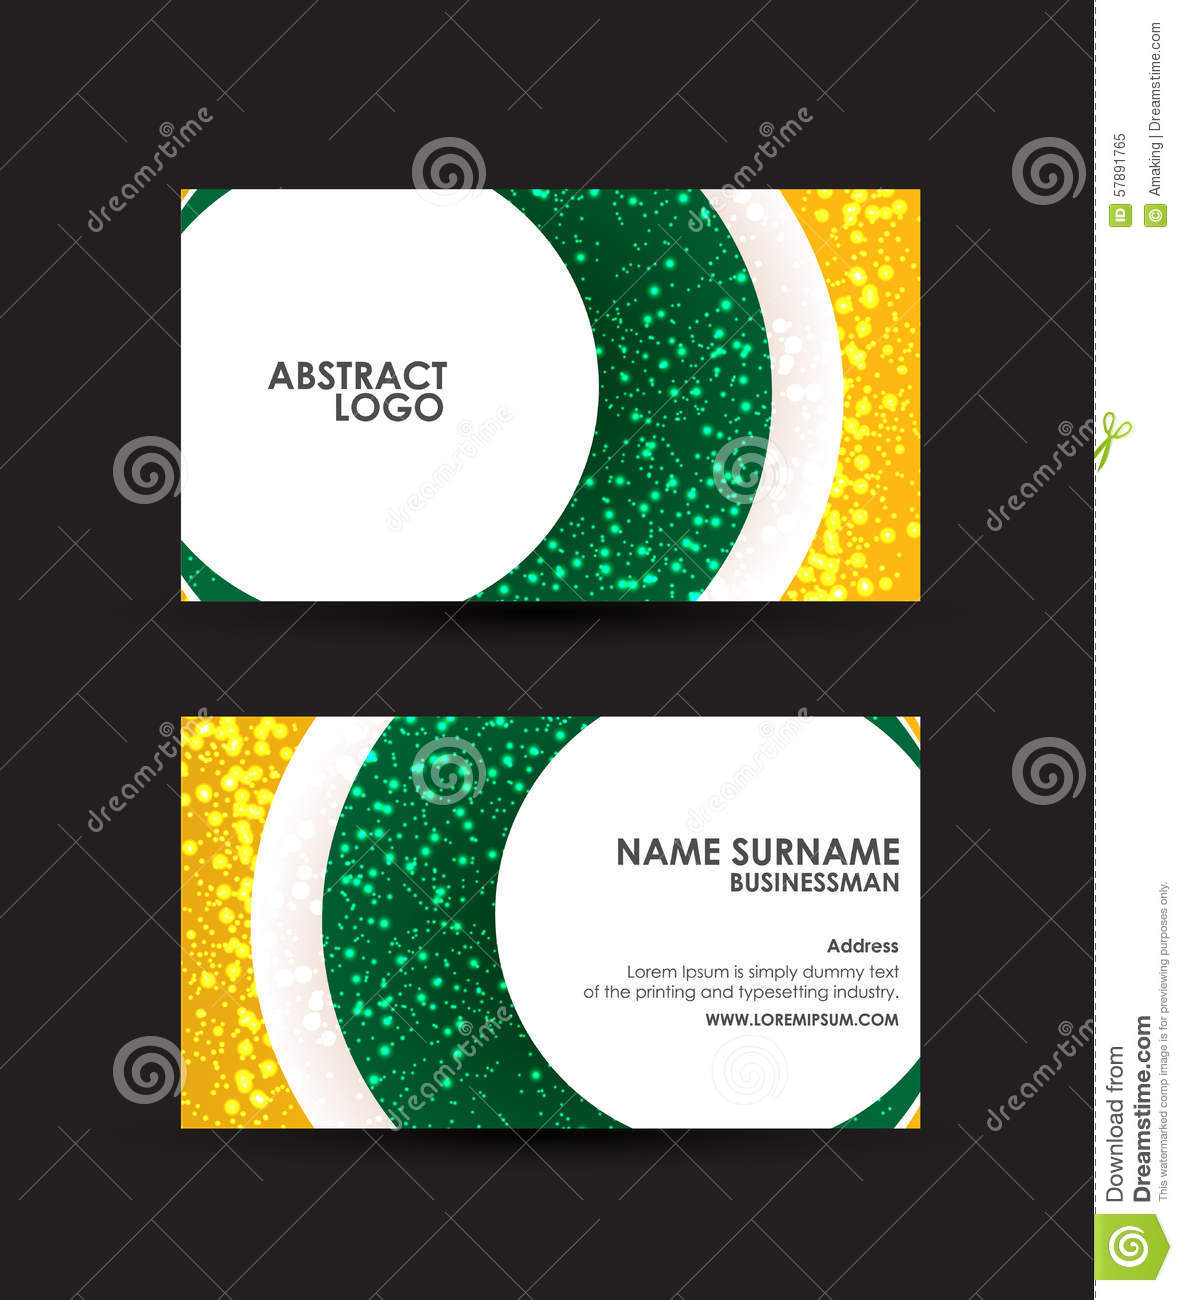 Abstract circles business card vector design template stock vector download abstract circles business card vector design template stock vector illustration of background cheaphphosting Images